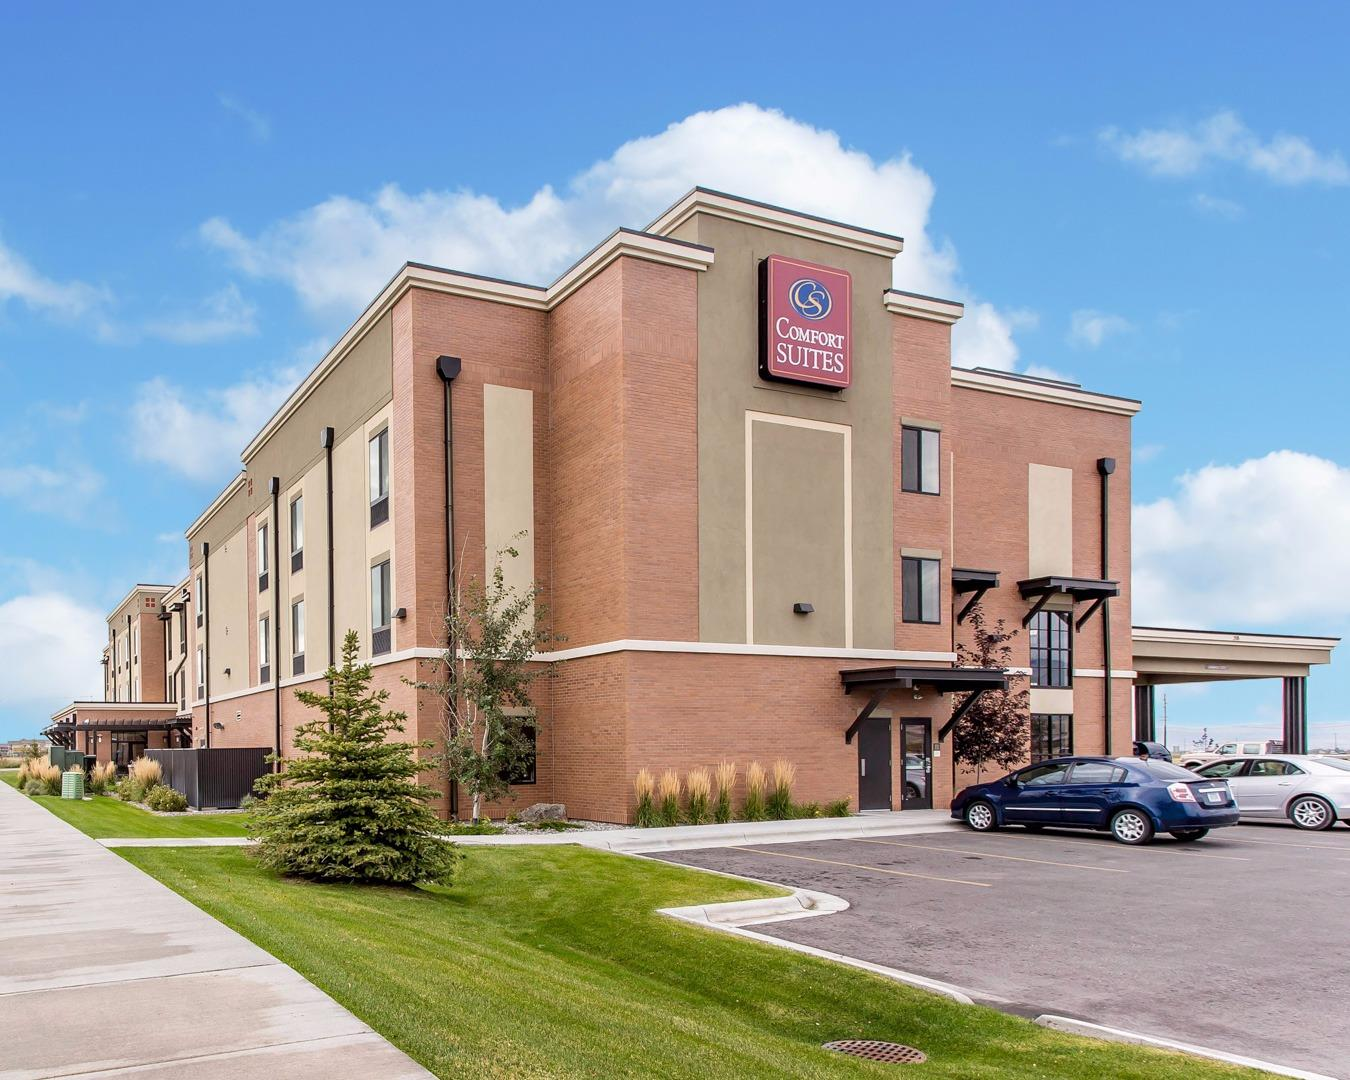 Hotels And Motels In Bozeman Mt